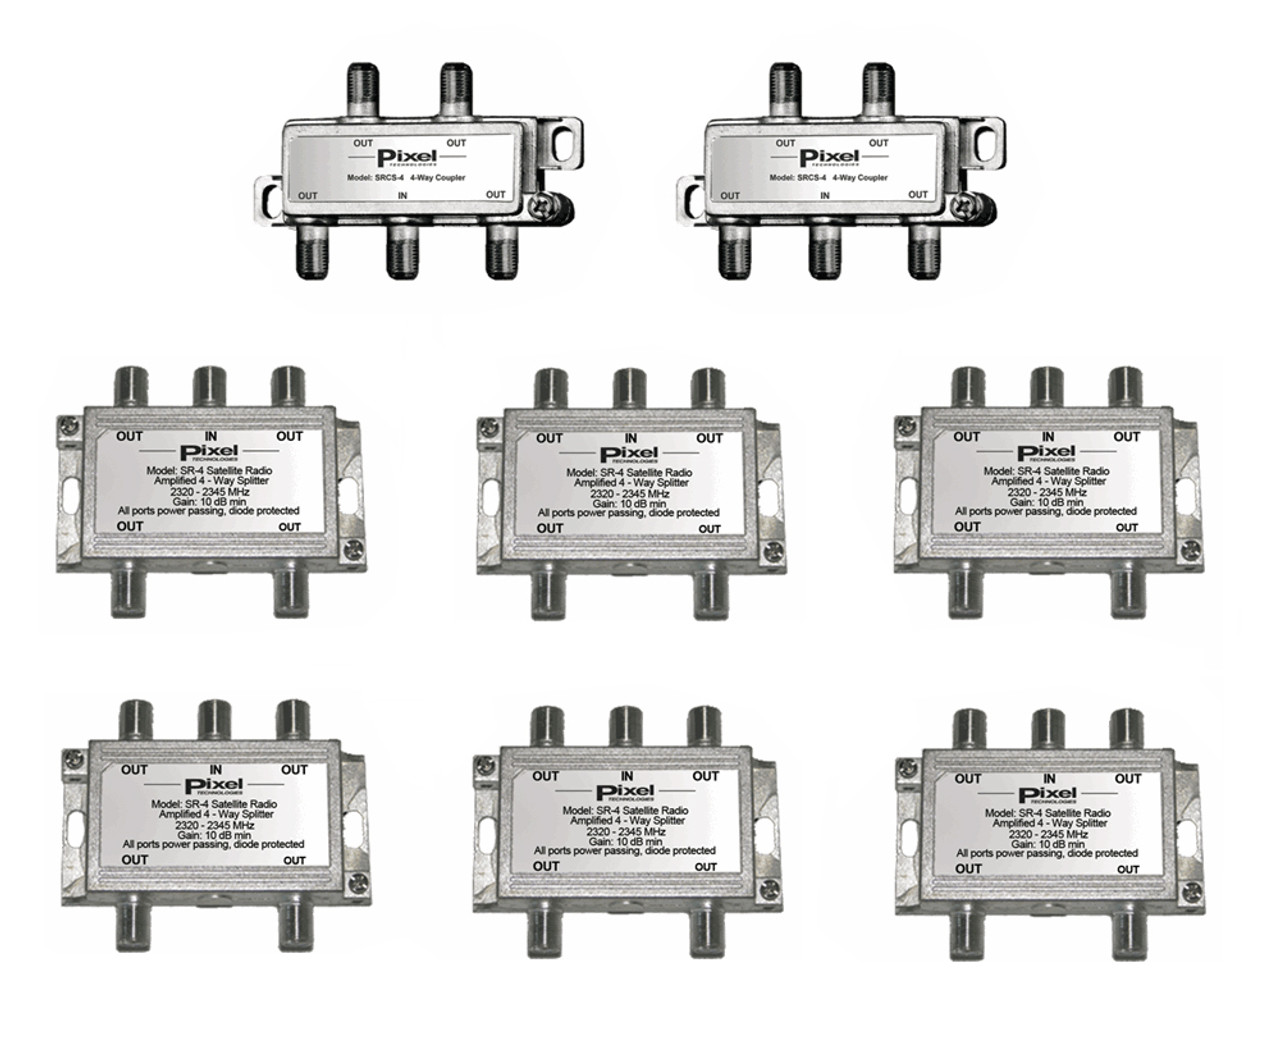 24-Way Splitter System for Satellite Radio Commercial Services